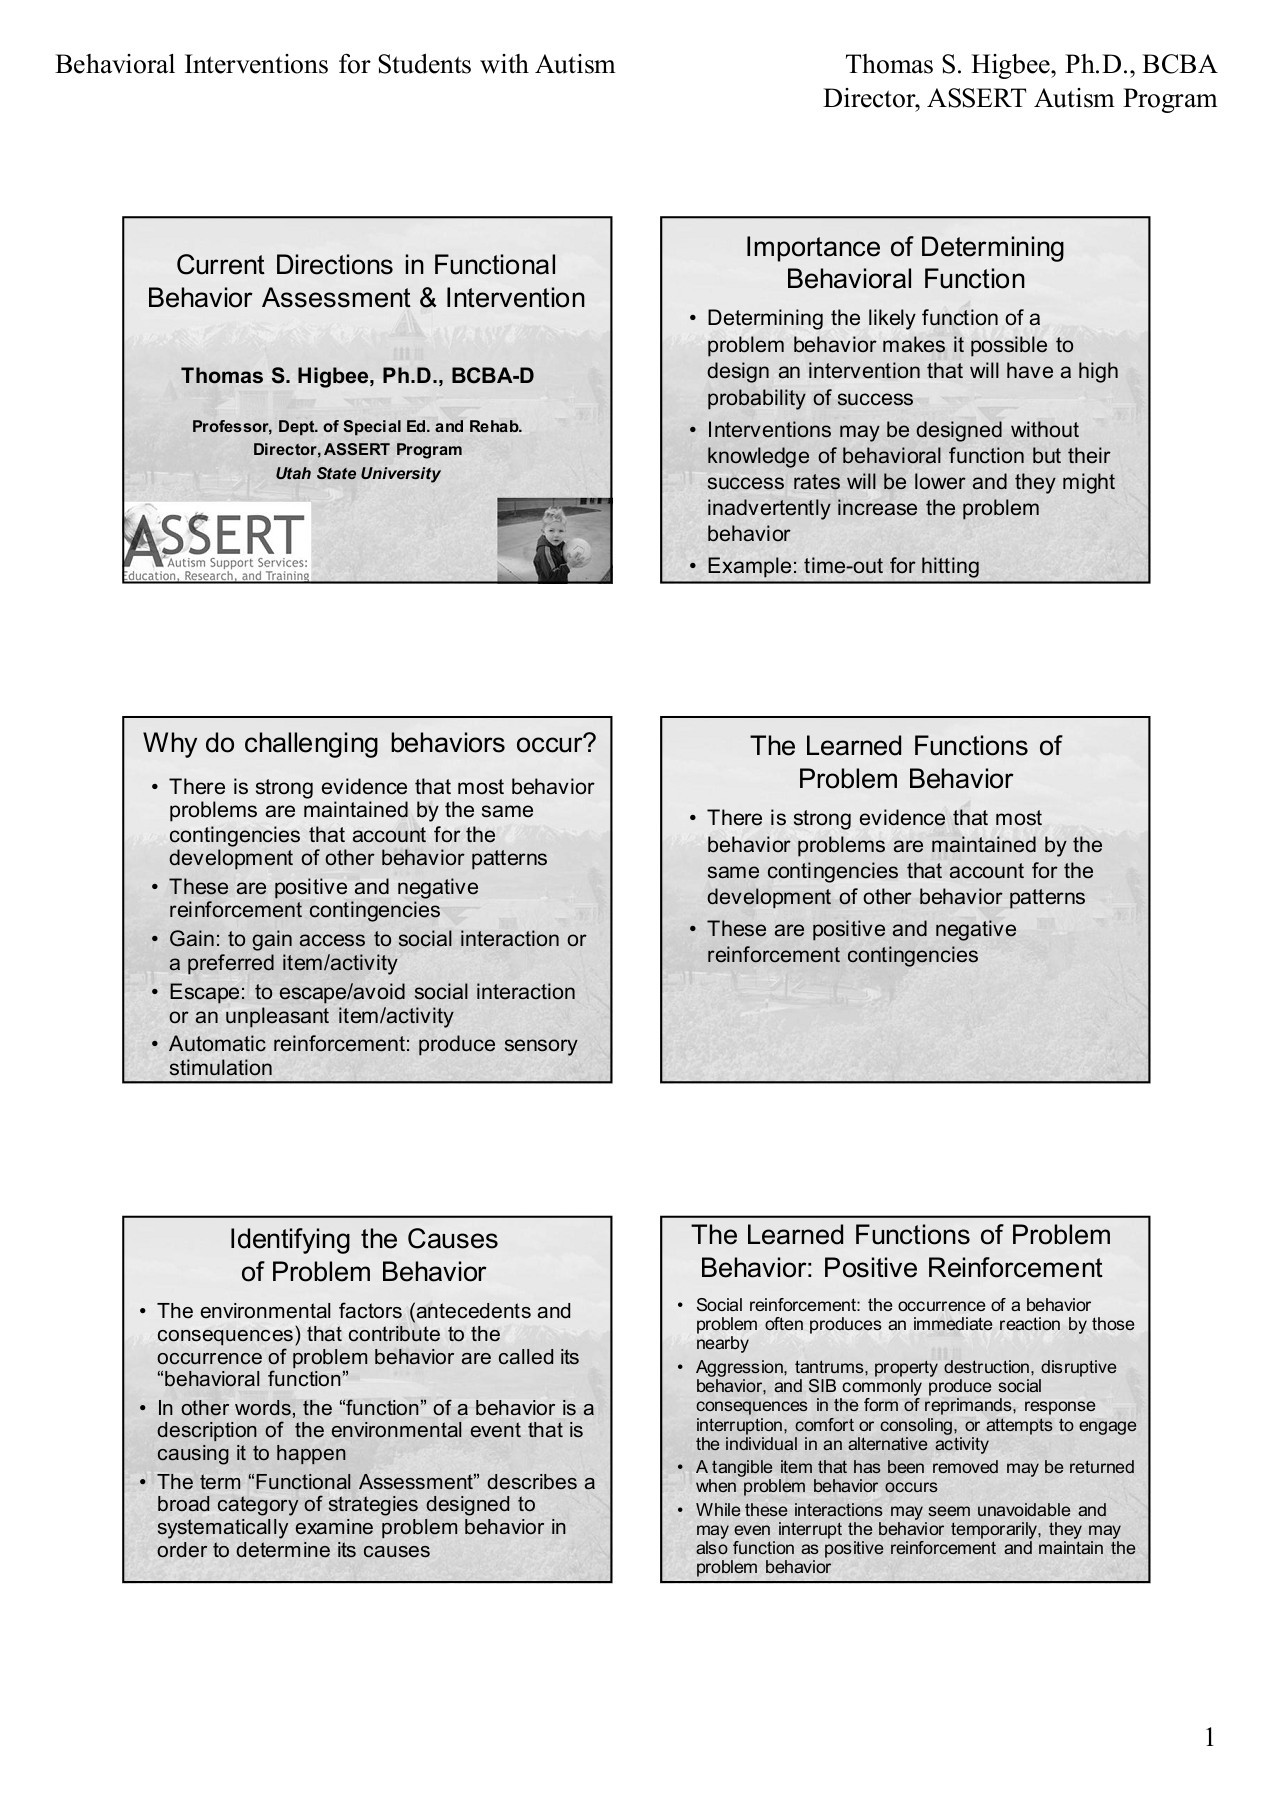 Behavioral Interventions For Students With Autism Thomas S   Pages 1 - 16  - Text Version | Fliphtml5